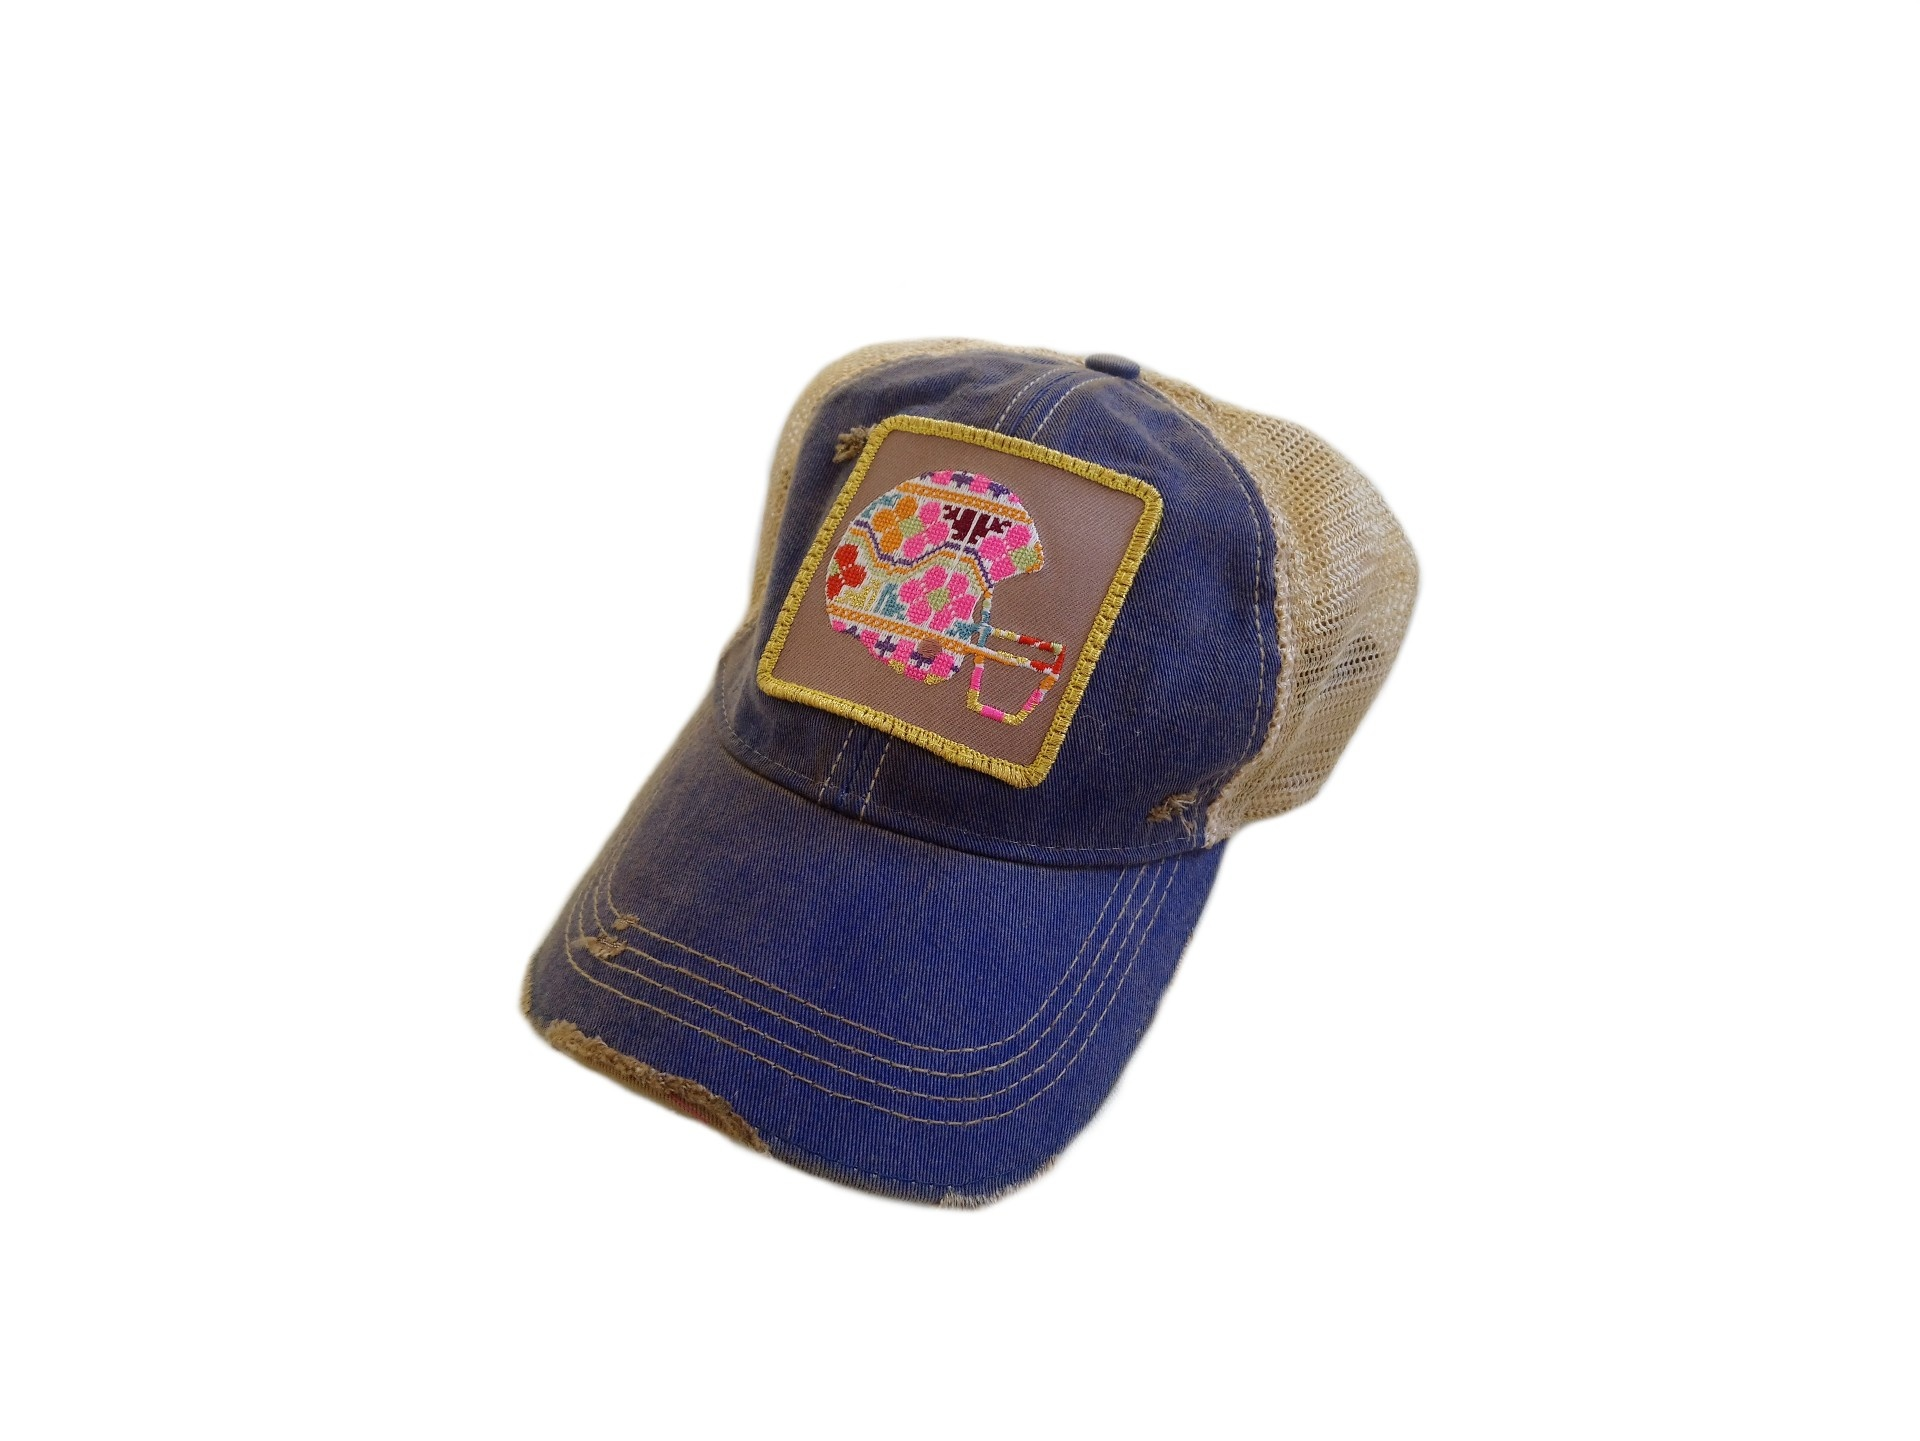 Embroidered Floral Football Helmet Patch Cap